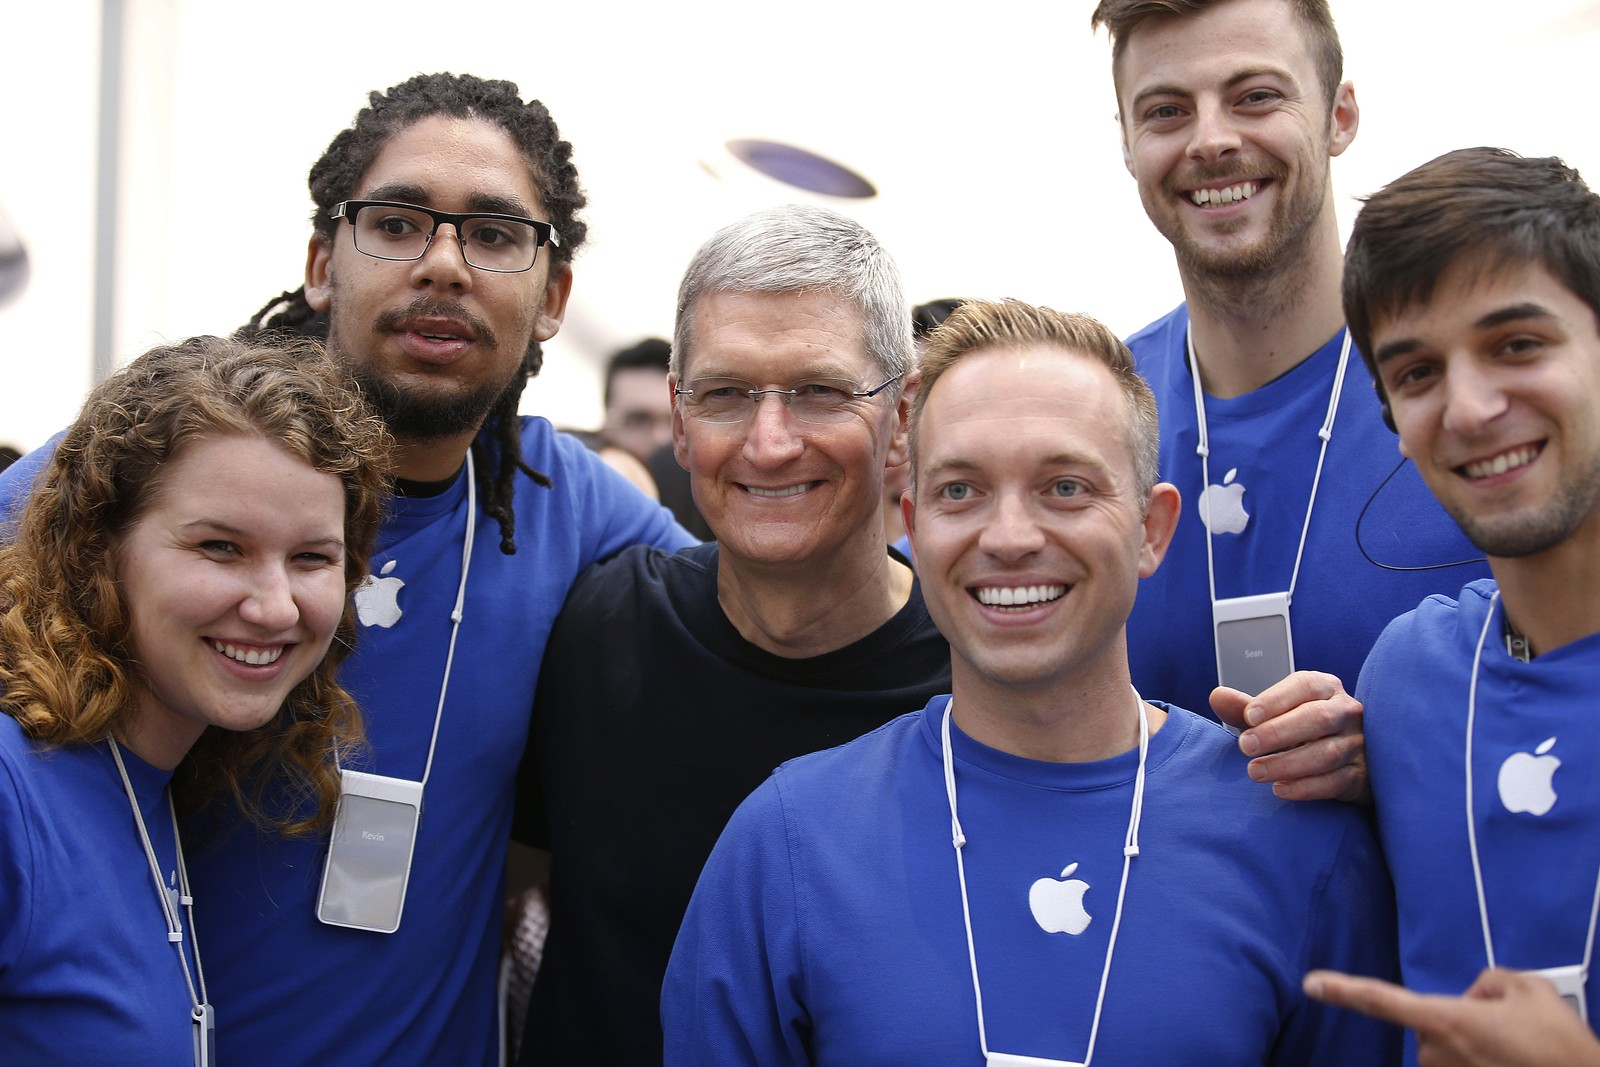 employee retention policies in apple inc Even apple worries about employee retention november 13, 2012 september 7, 2016 jeff mike hr customer experience , human resources i have an iphone, an ipad, appletv, and recently (because intuitively i knew integration was key) bought a macbook.